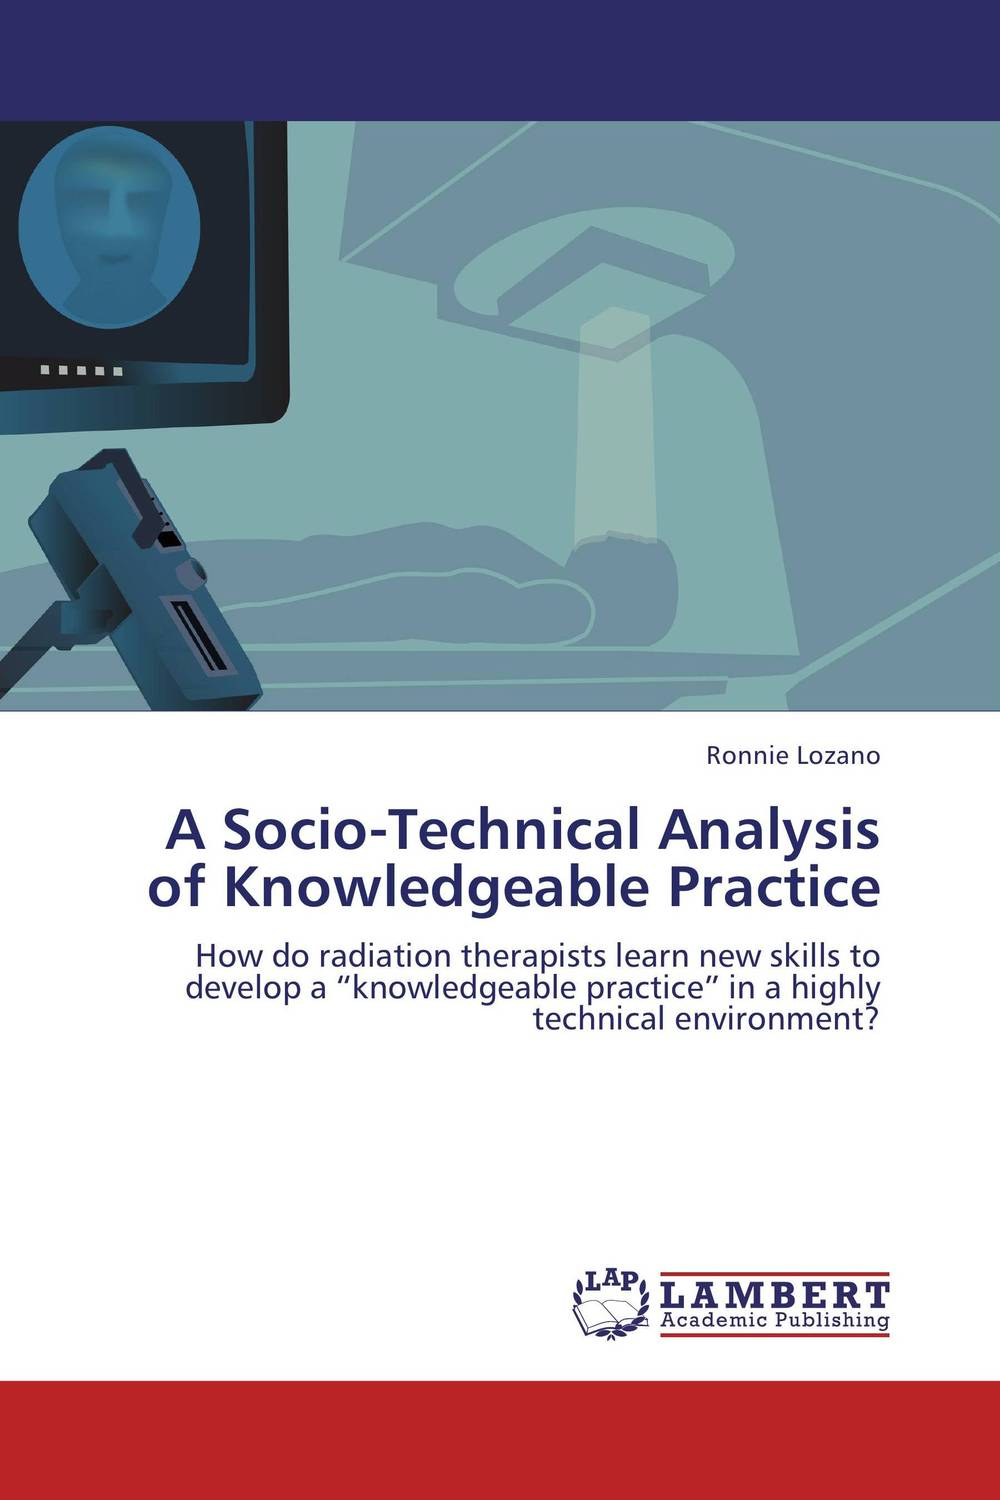 A Socio-Technical Analysis of Knowledgeable Practice driven to distraction